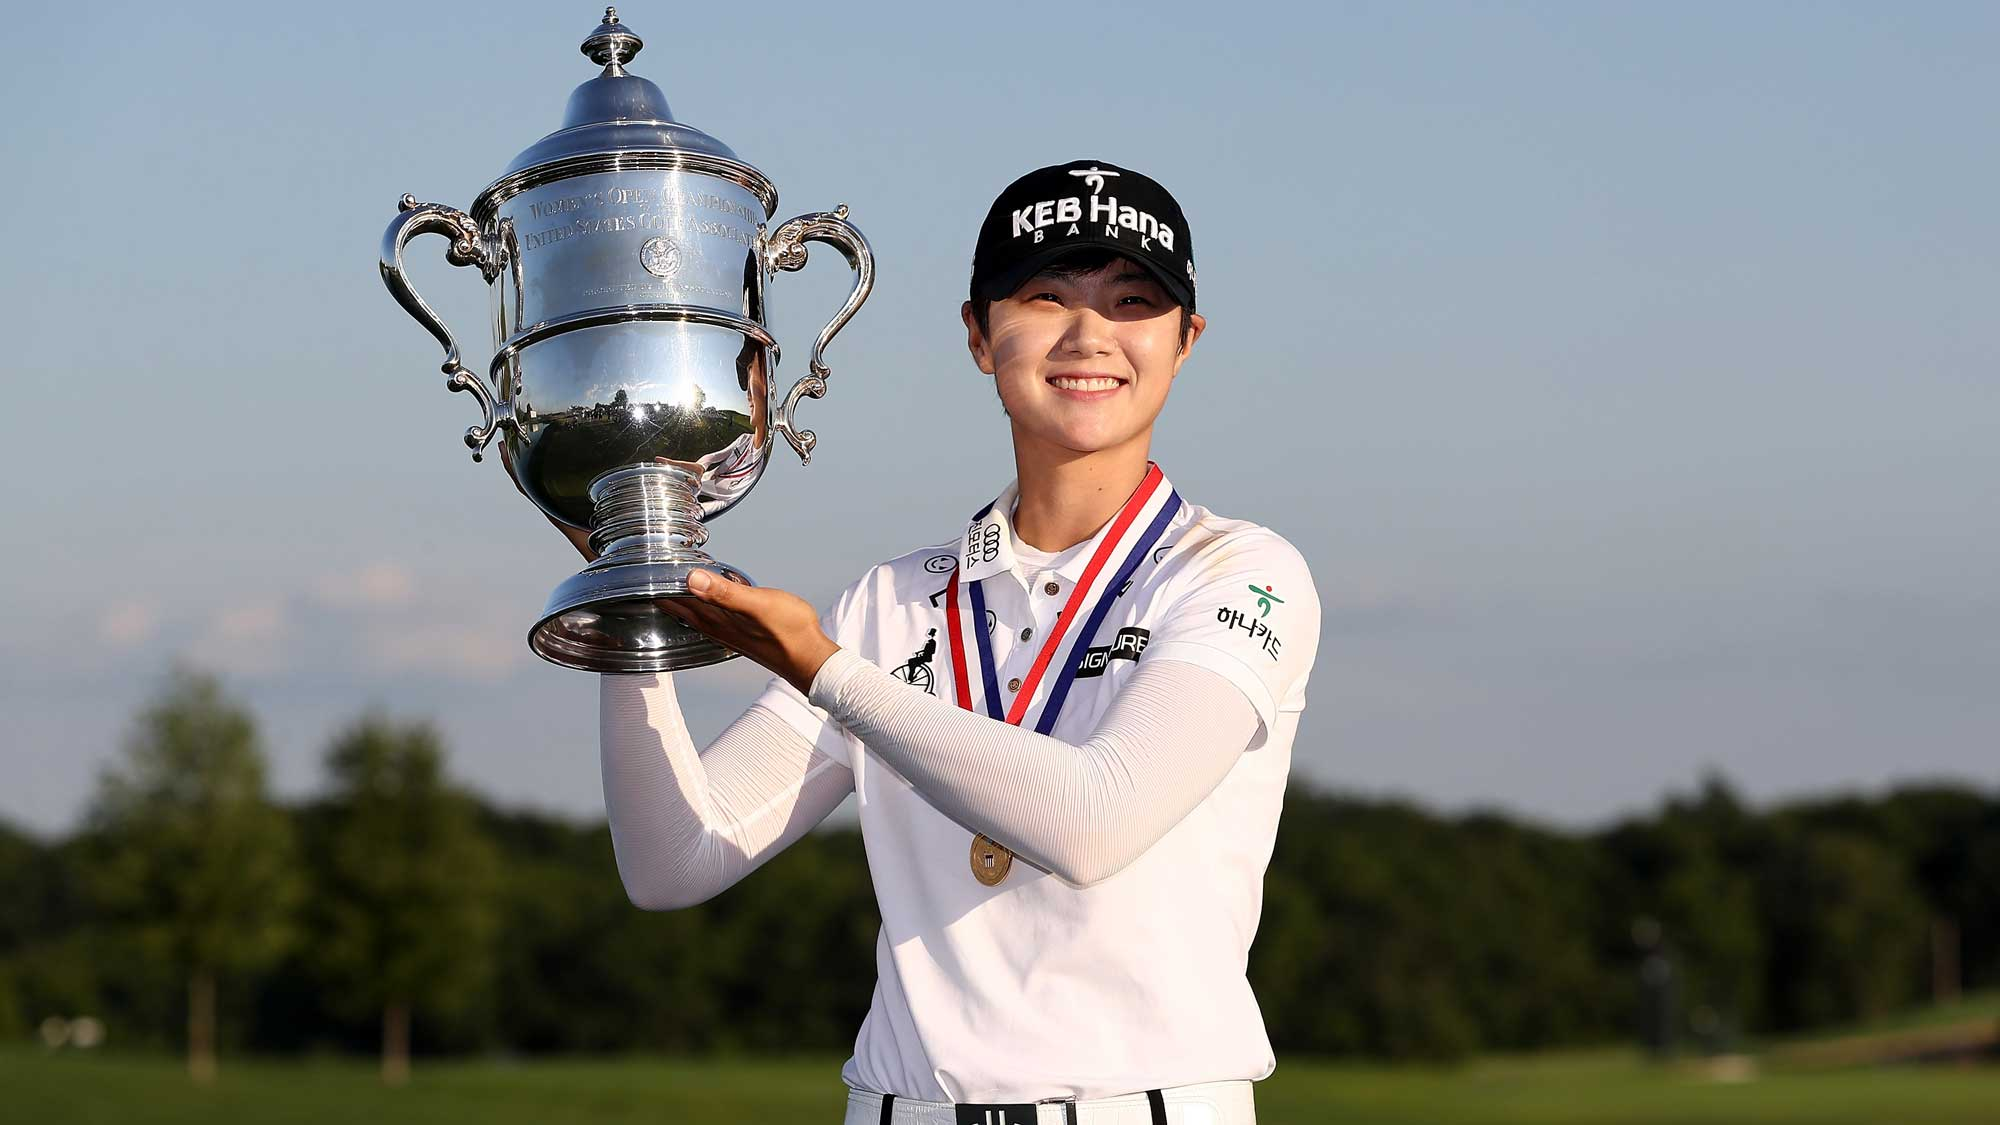 Sung Hyun Park of Korea poses with the trophy afer the final round of the U.S. Women's Open